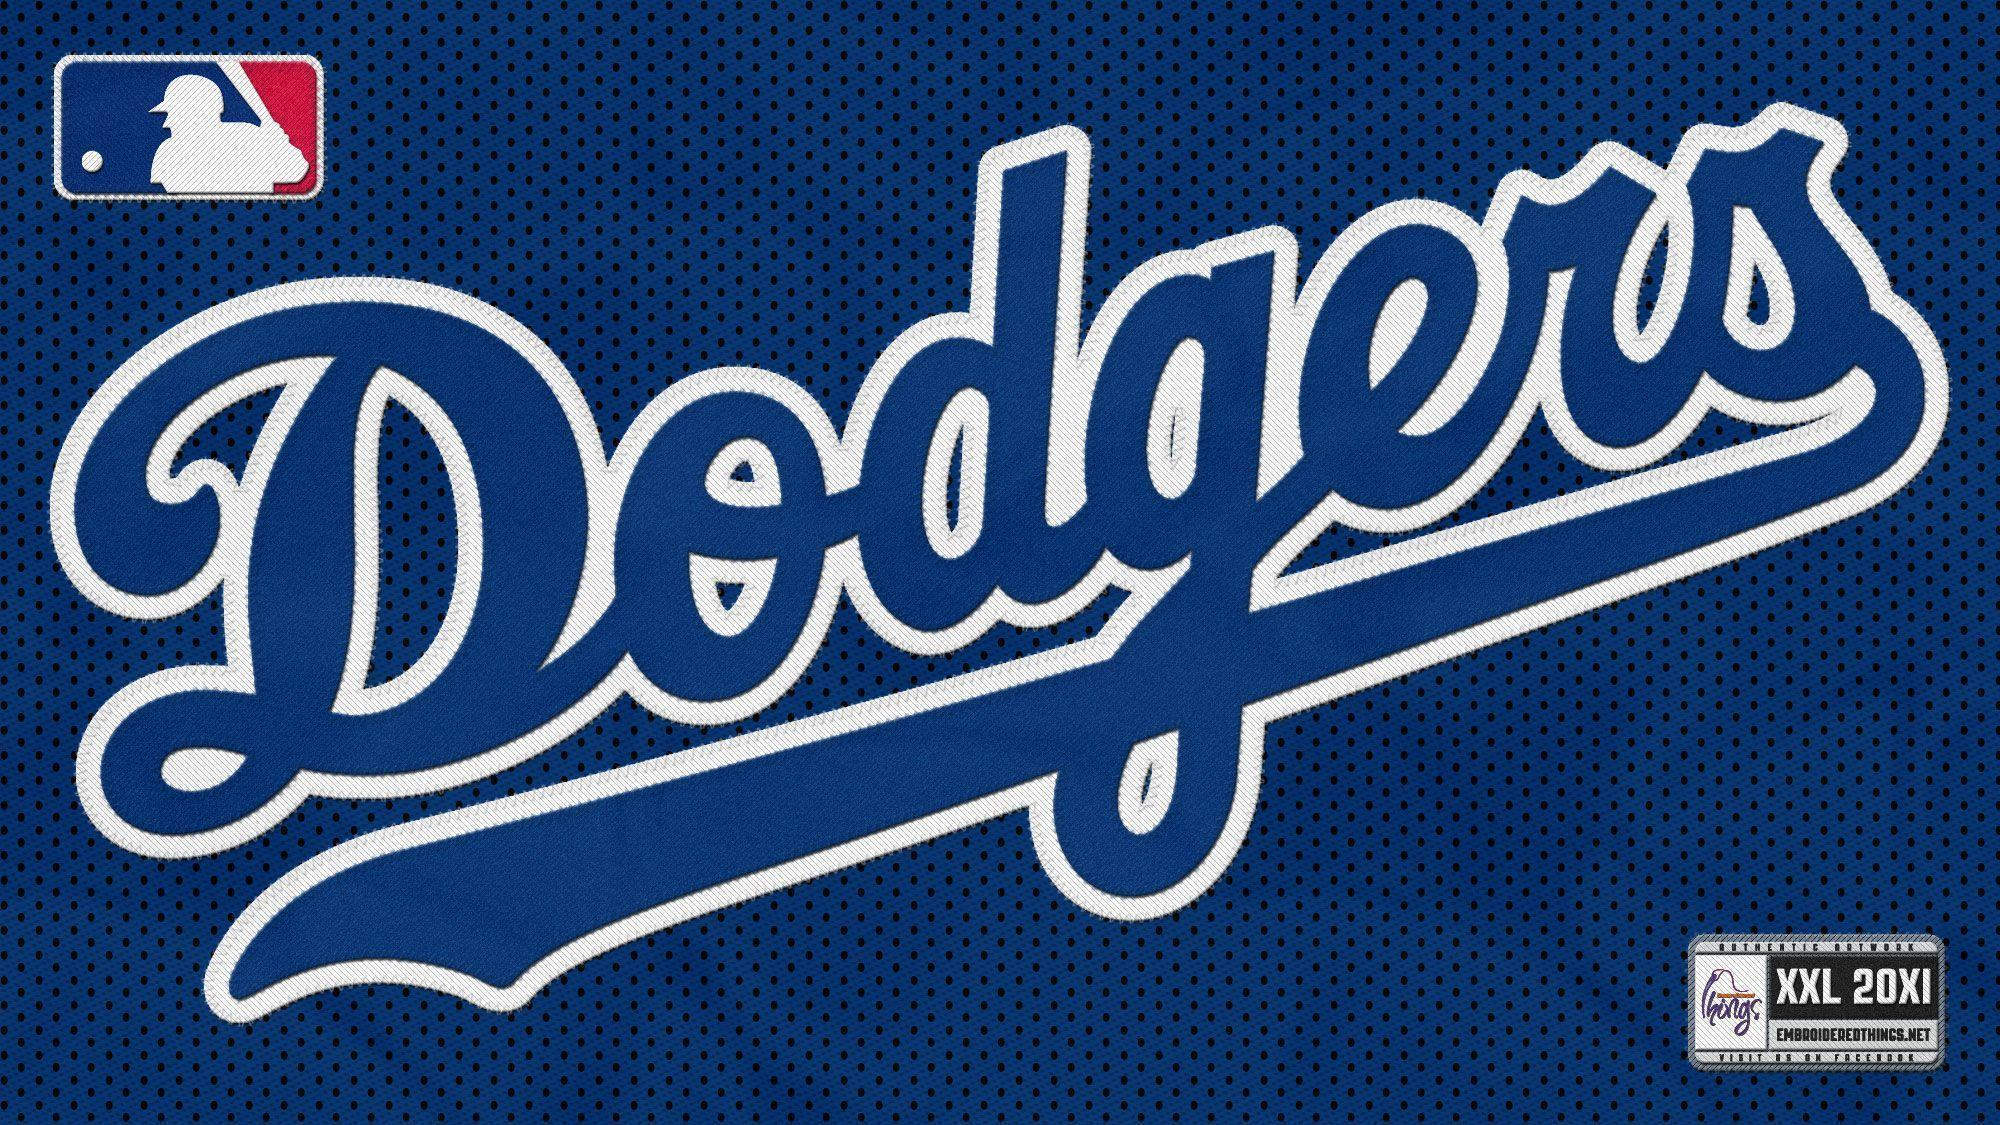 4 Los Angeles Dodgers Wallpapers